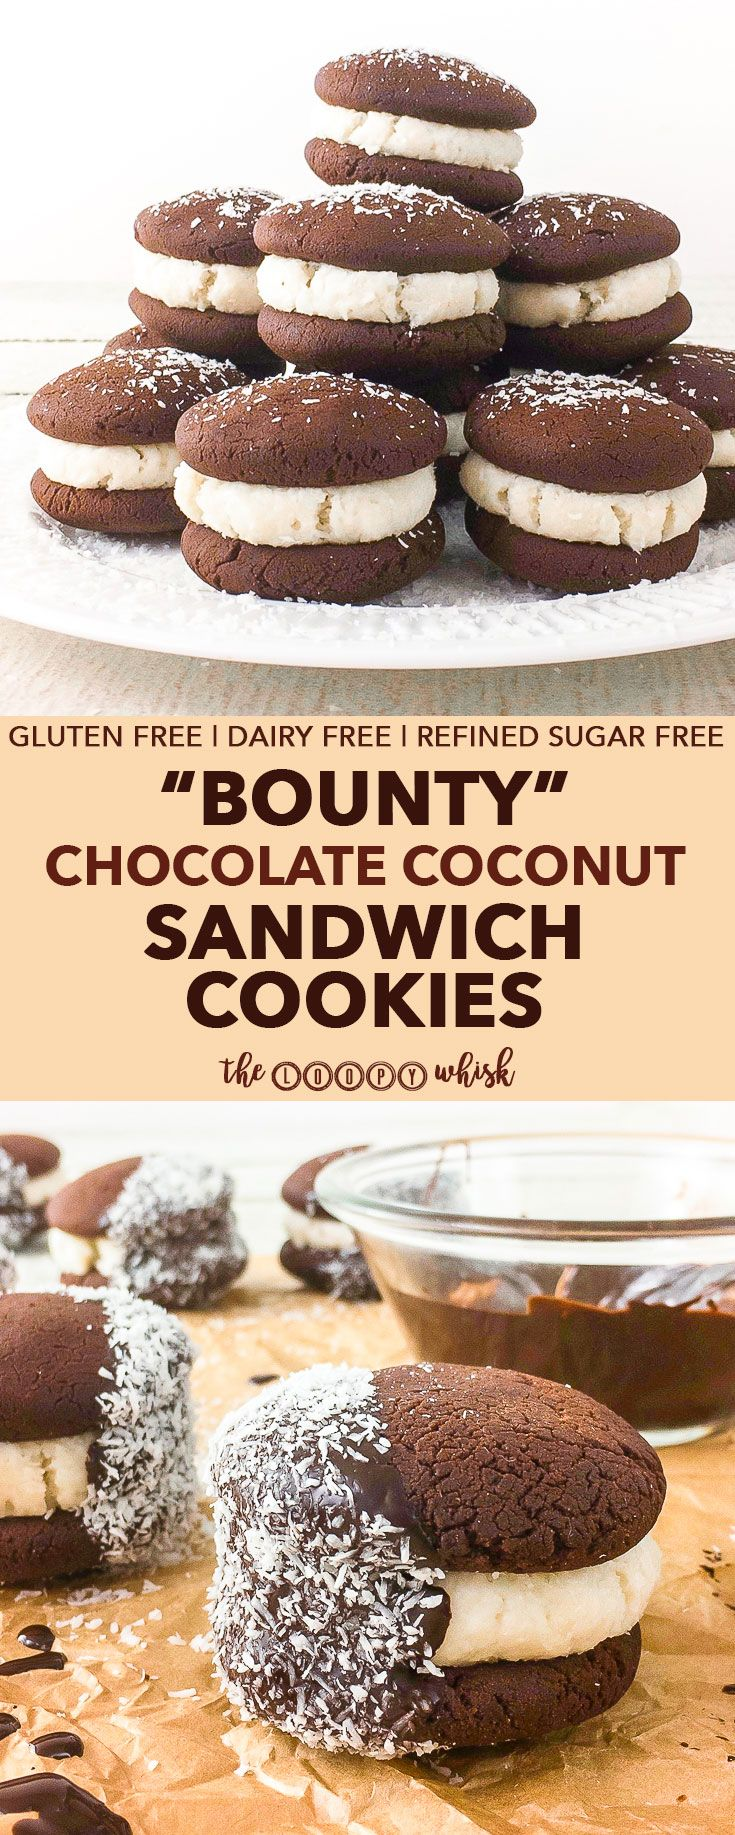 """""""Bounty"""" Chocolate Coconut Sandwich Cookies - Prepare to be blown away by how absolutely scrumptious these """"Bounty"""" chocolate coconut sandwich cookies are. Crumbly decadent chocolate cookies meet flavour-charged coconut filling in this gluten, dairy and refined sugar free treat, which features coconut in three different forms!"""